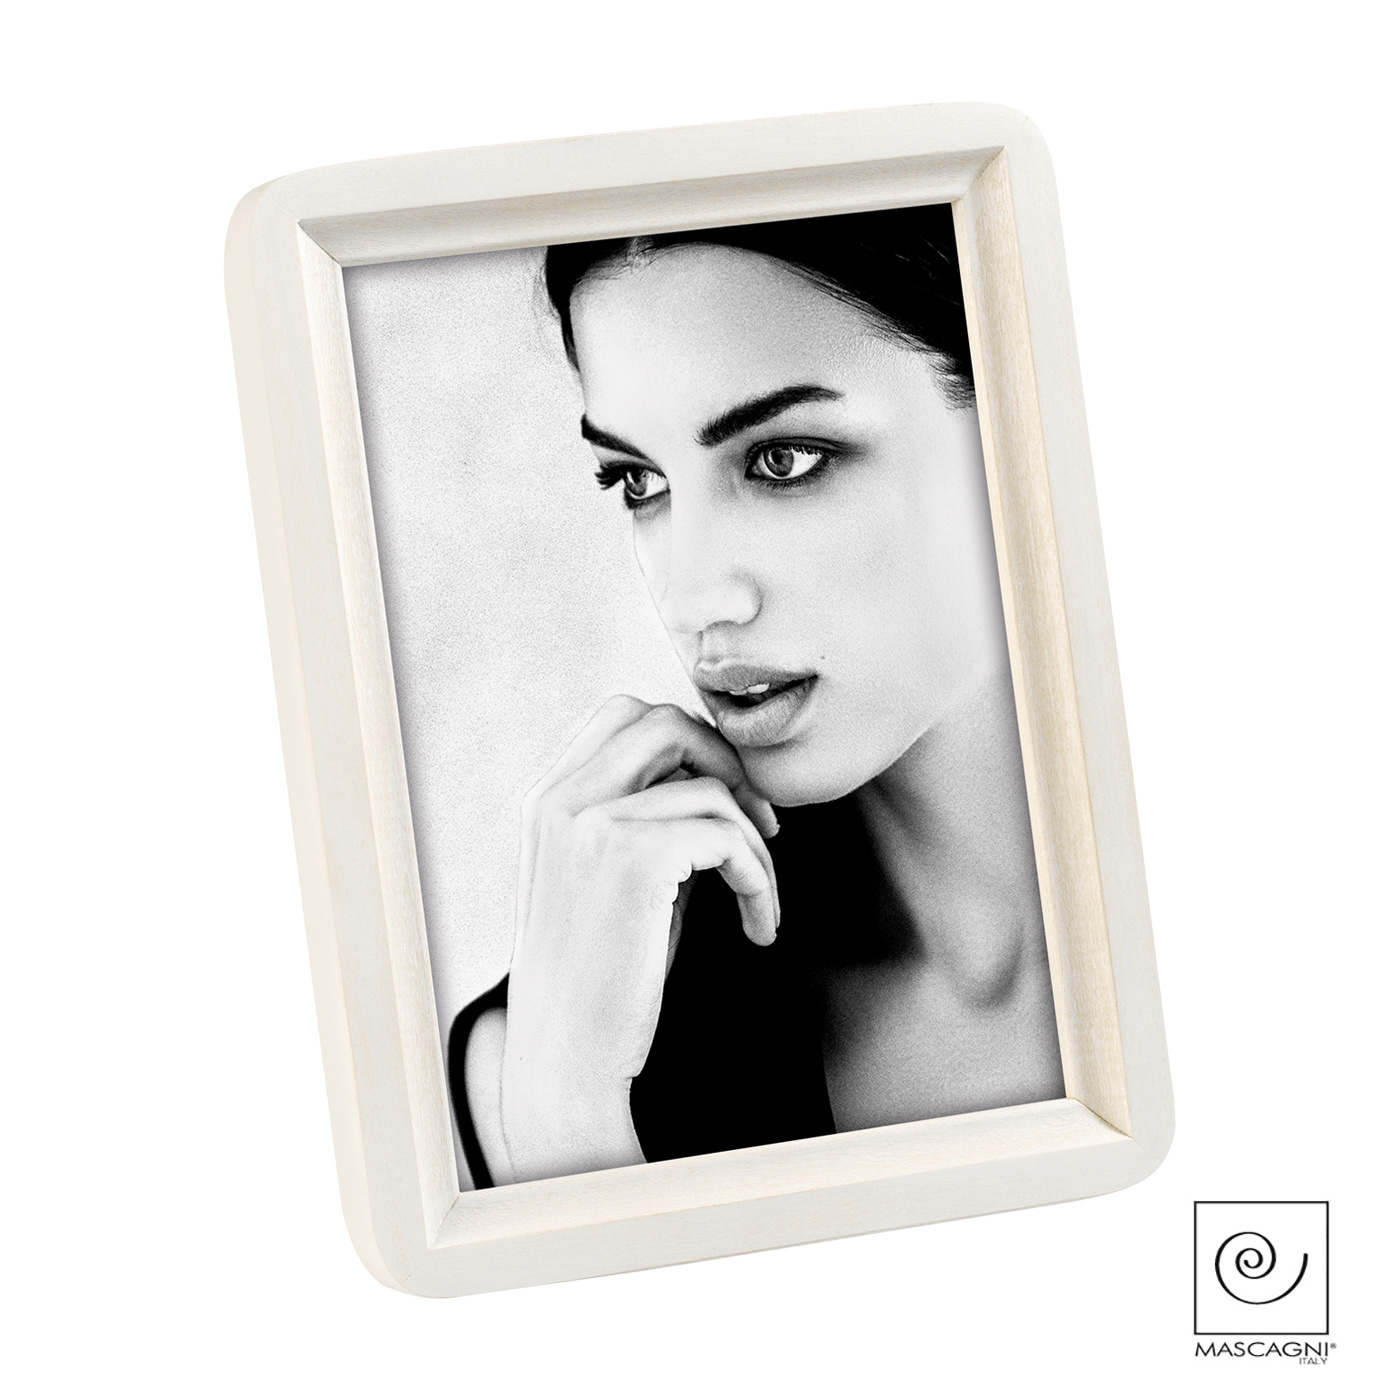 Art Mascagni A1068 PHOTO FRAME 13X18 - COL.GREY